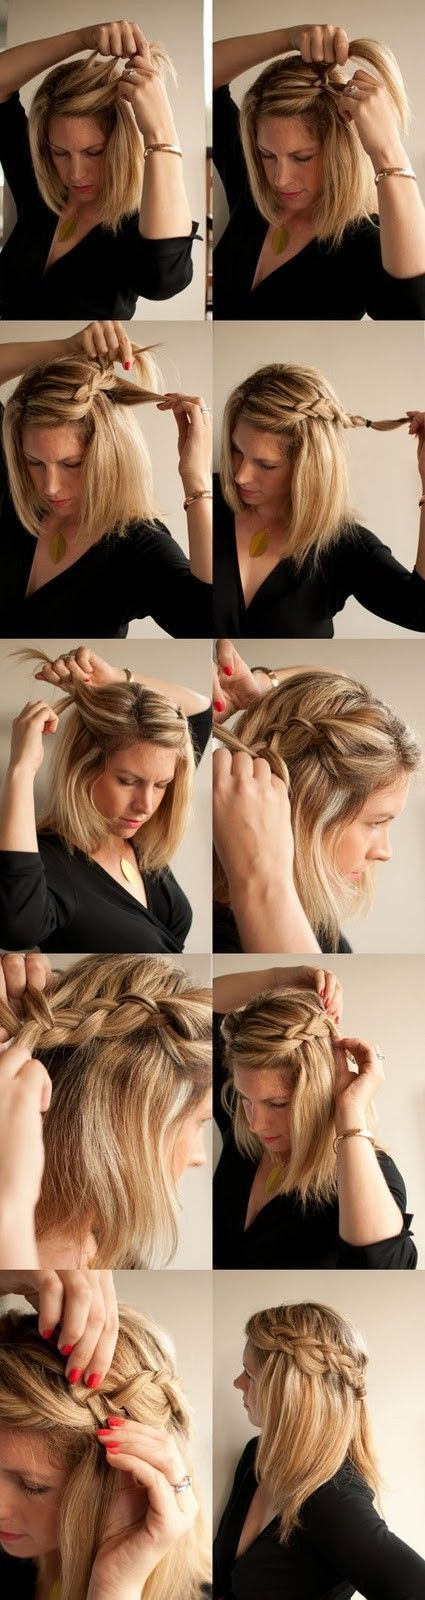 15 cute and easy hairstyle tutorials for medium length hair how to instant hairstyles do yourself solutioingenieria Gallery